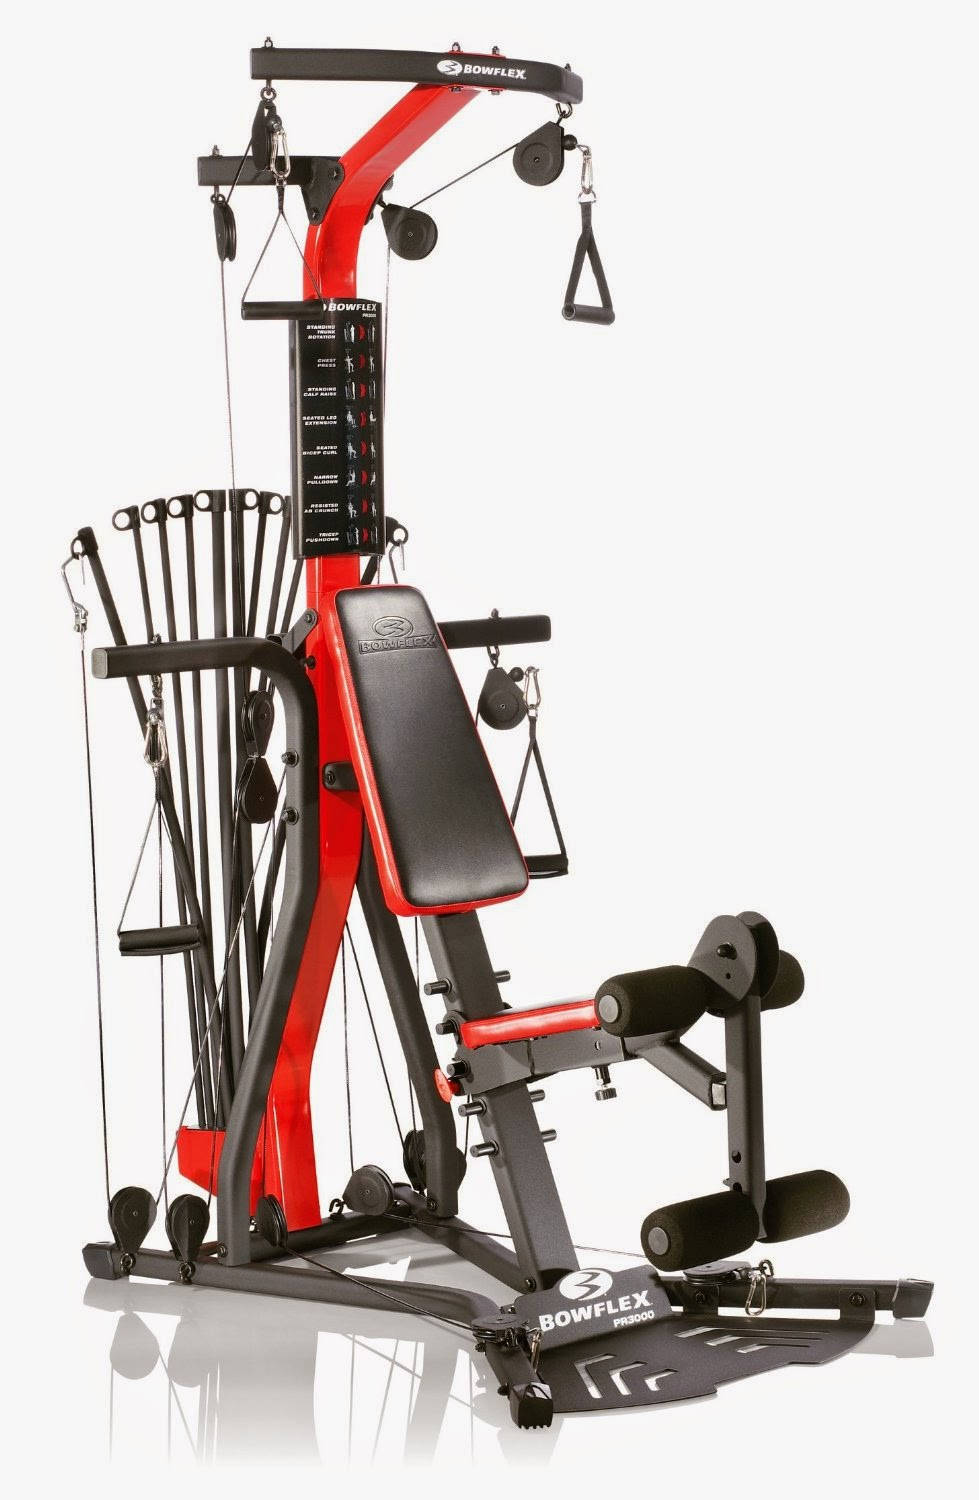 bowflex exercise machine